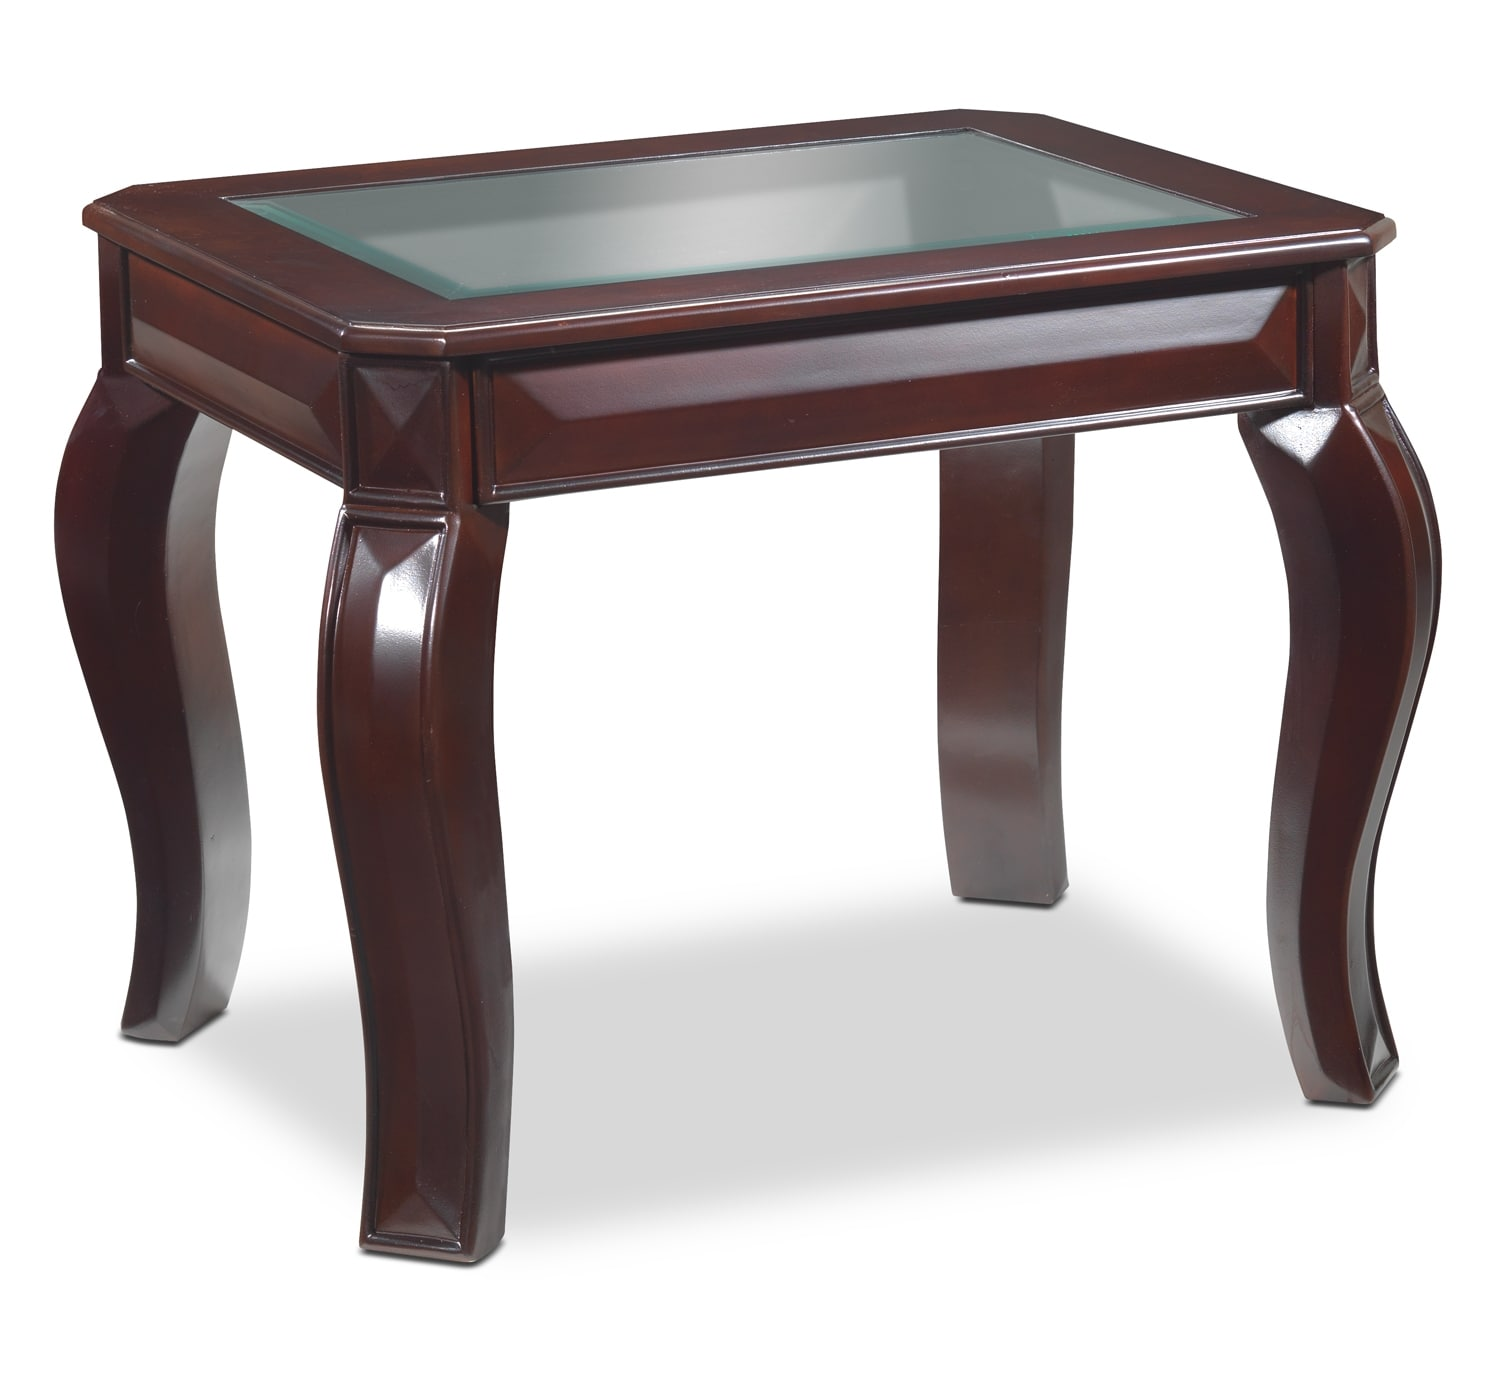 Jamison End Table - Deep Espresso